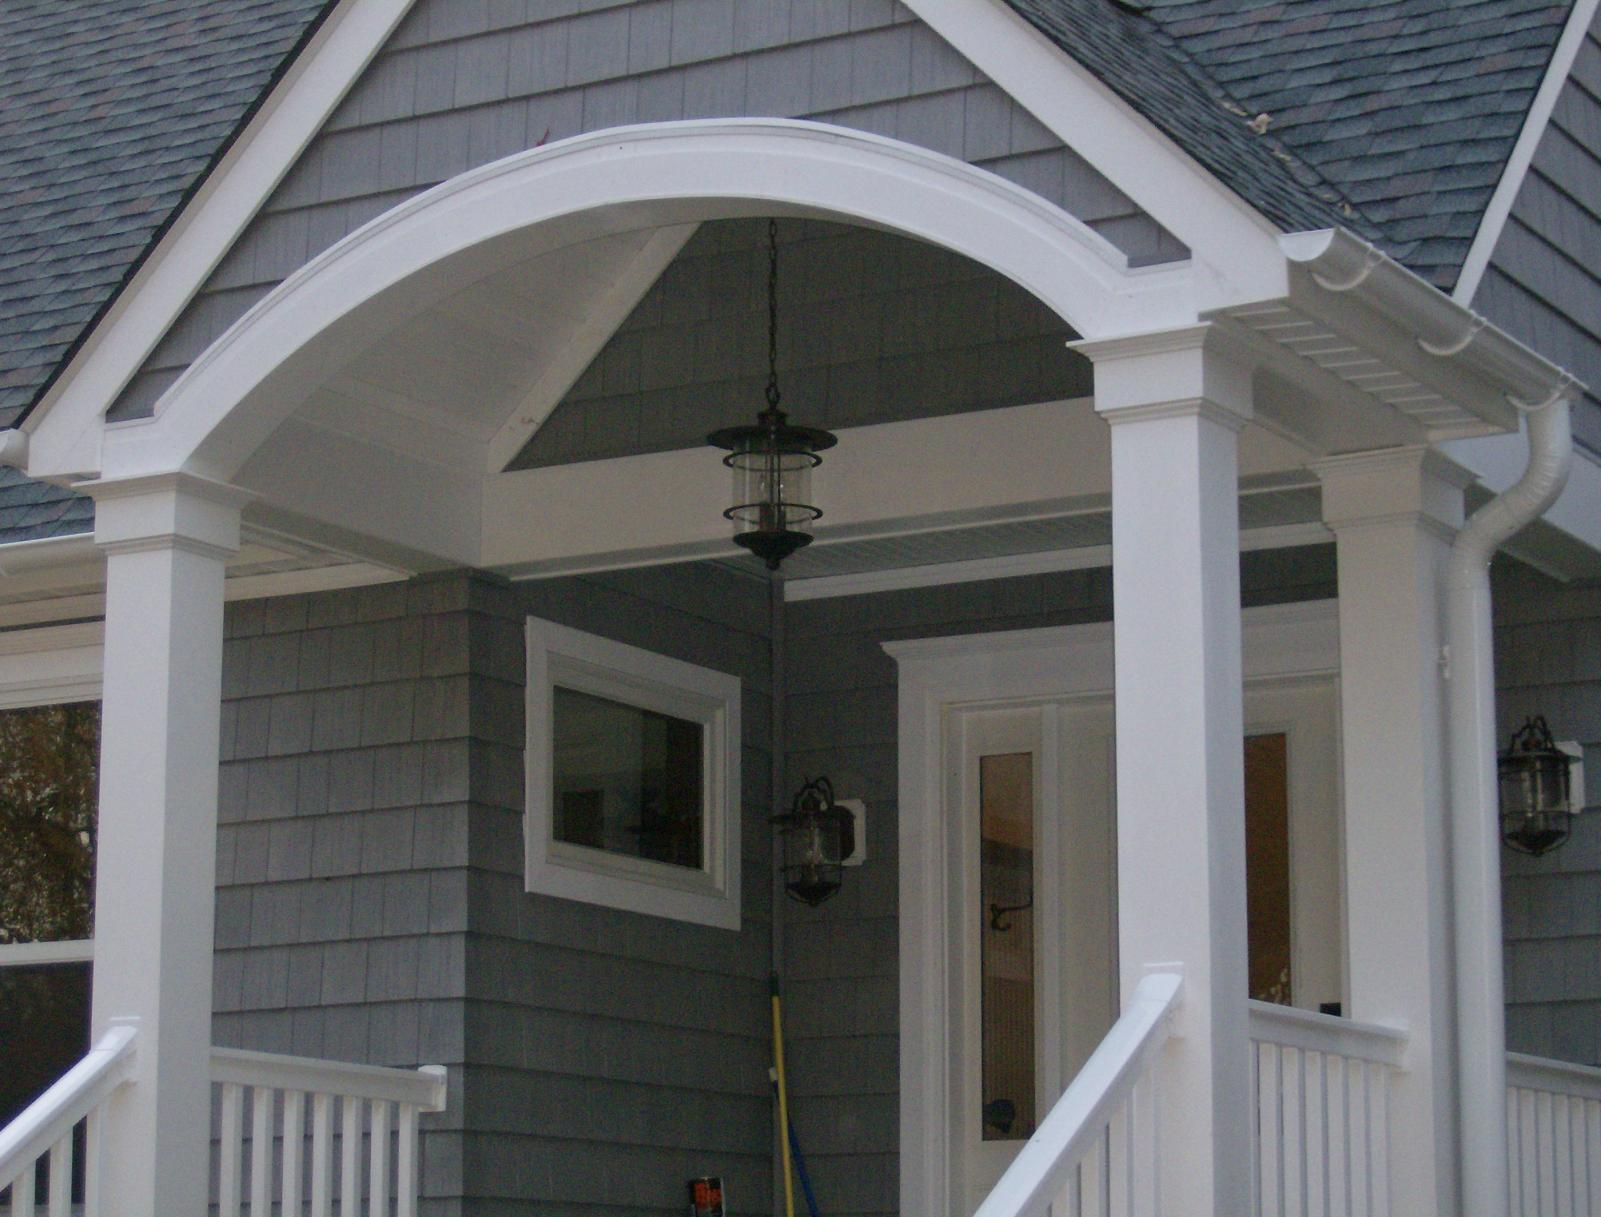 Square Pvc Porch Columns